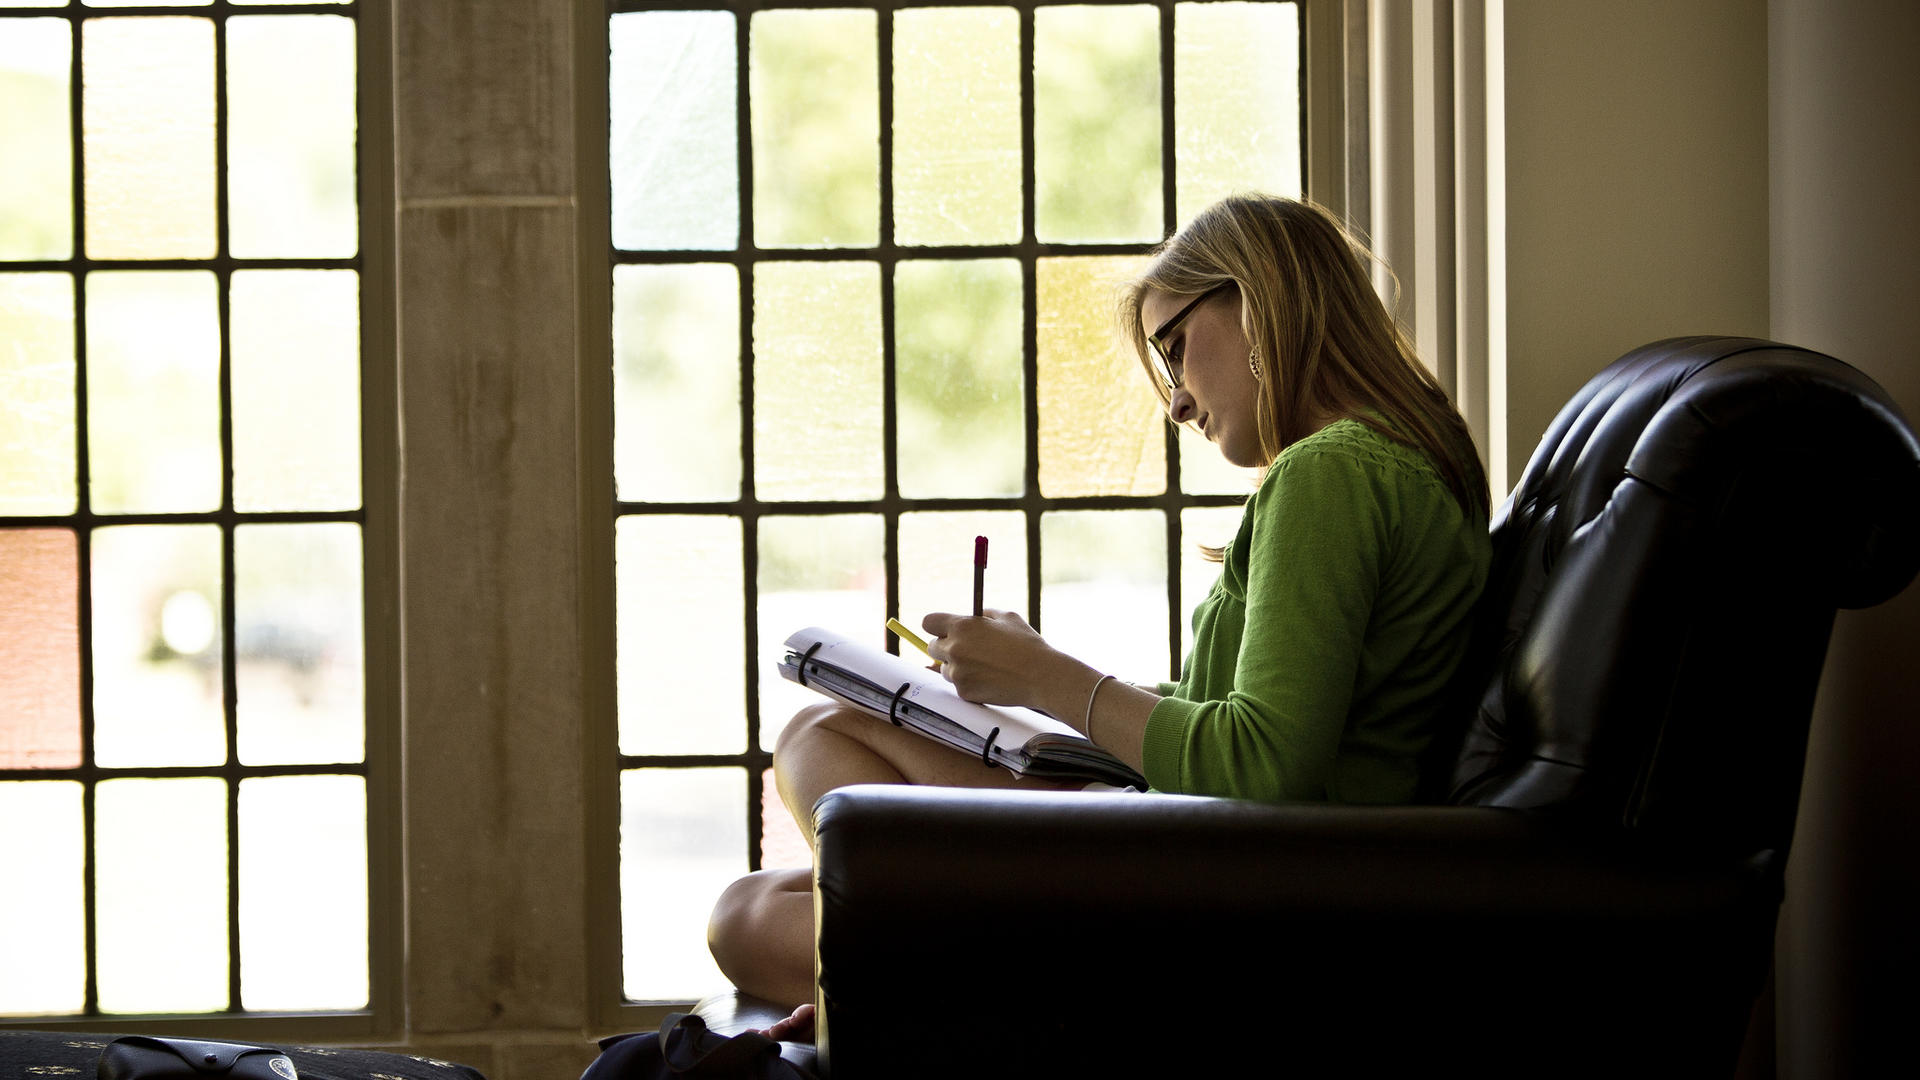 Woman studying in front of stained glass window